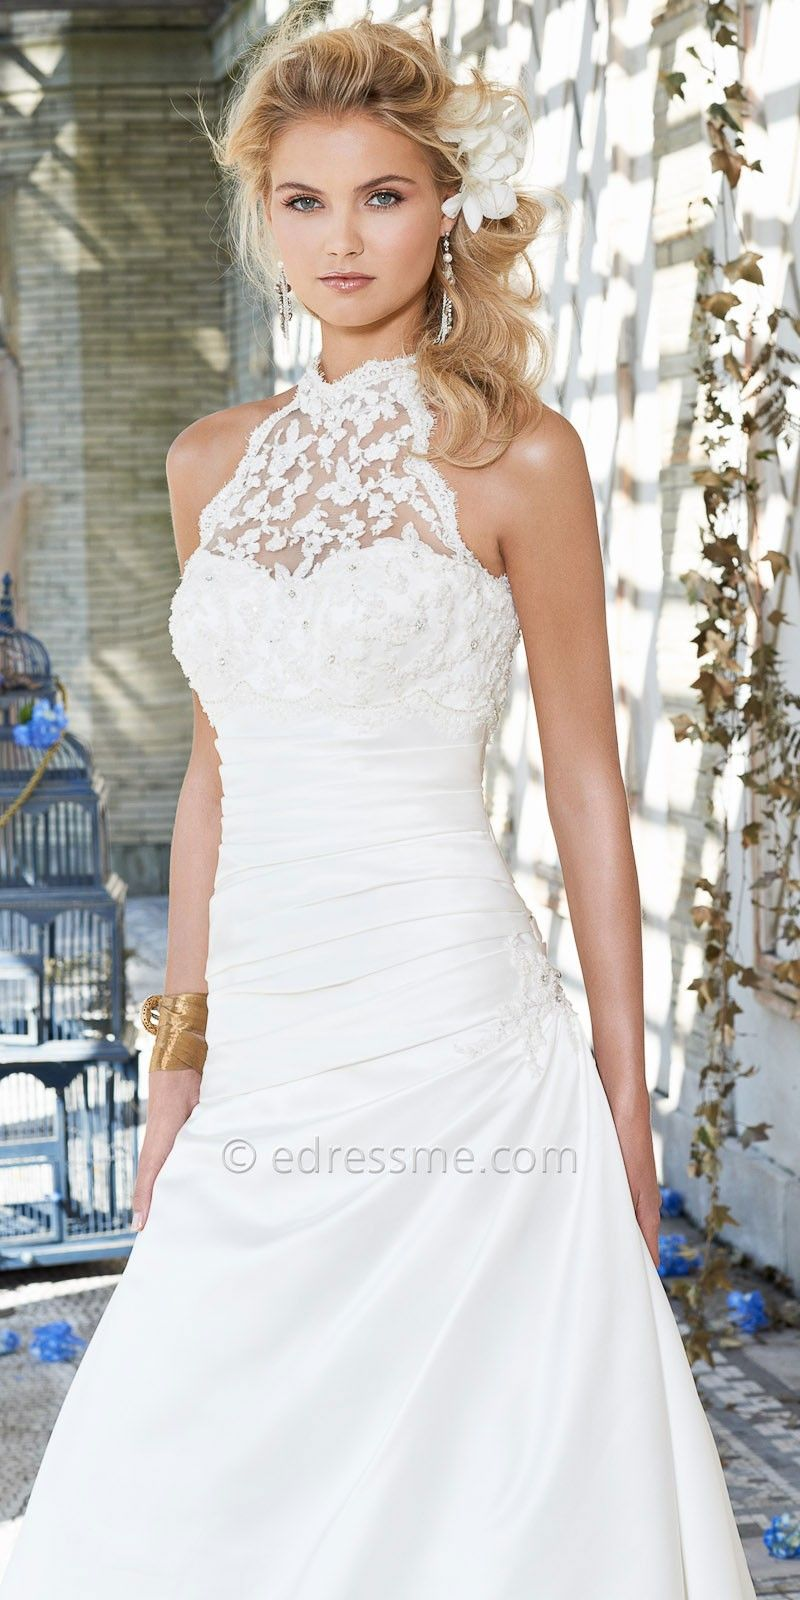 Beaded lace halter wedding dress by camille la vie weddings beaded lace halter wedding dress by camille la vie junglespirit Image collections